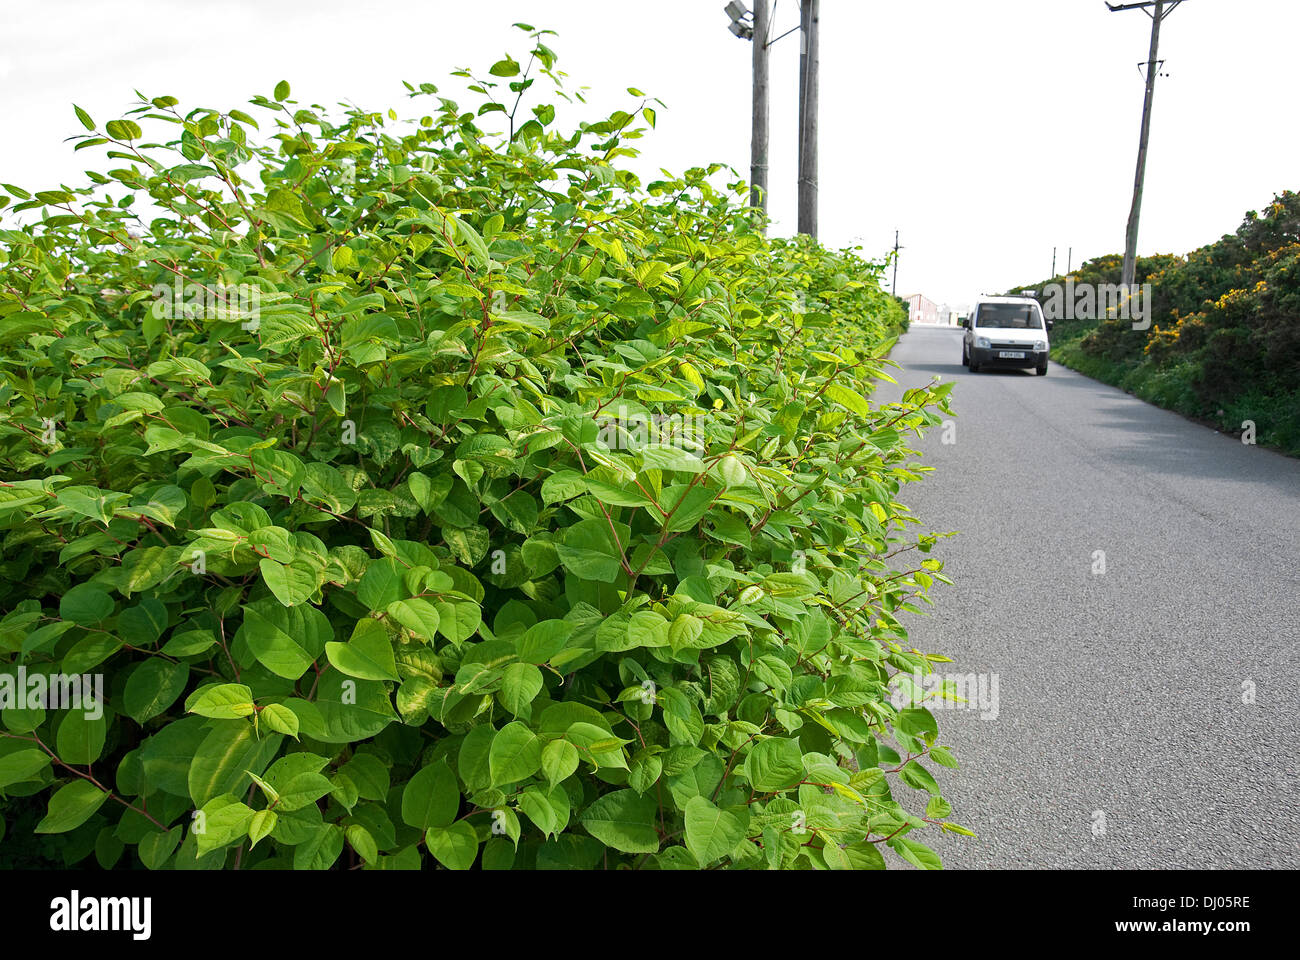 japanese knotweed growing by the roadside in a country lane - Stock Image